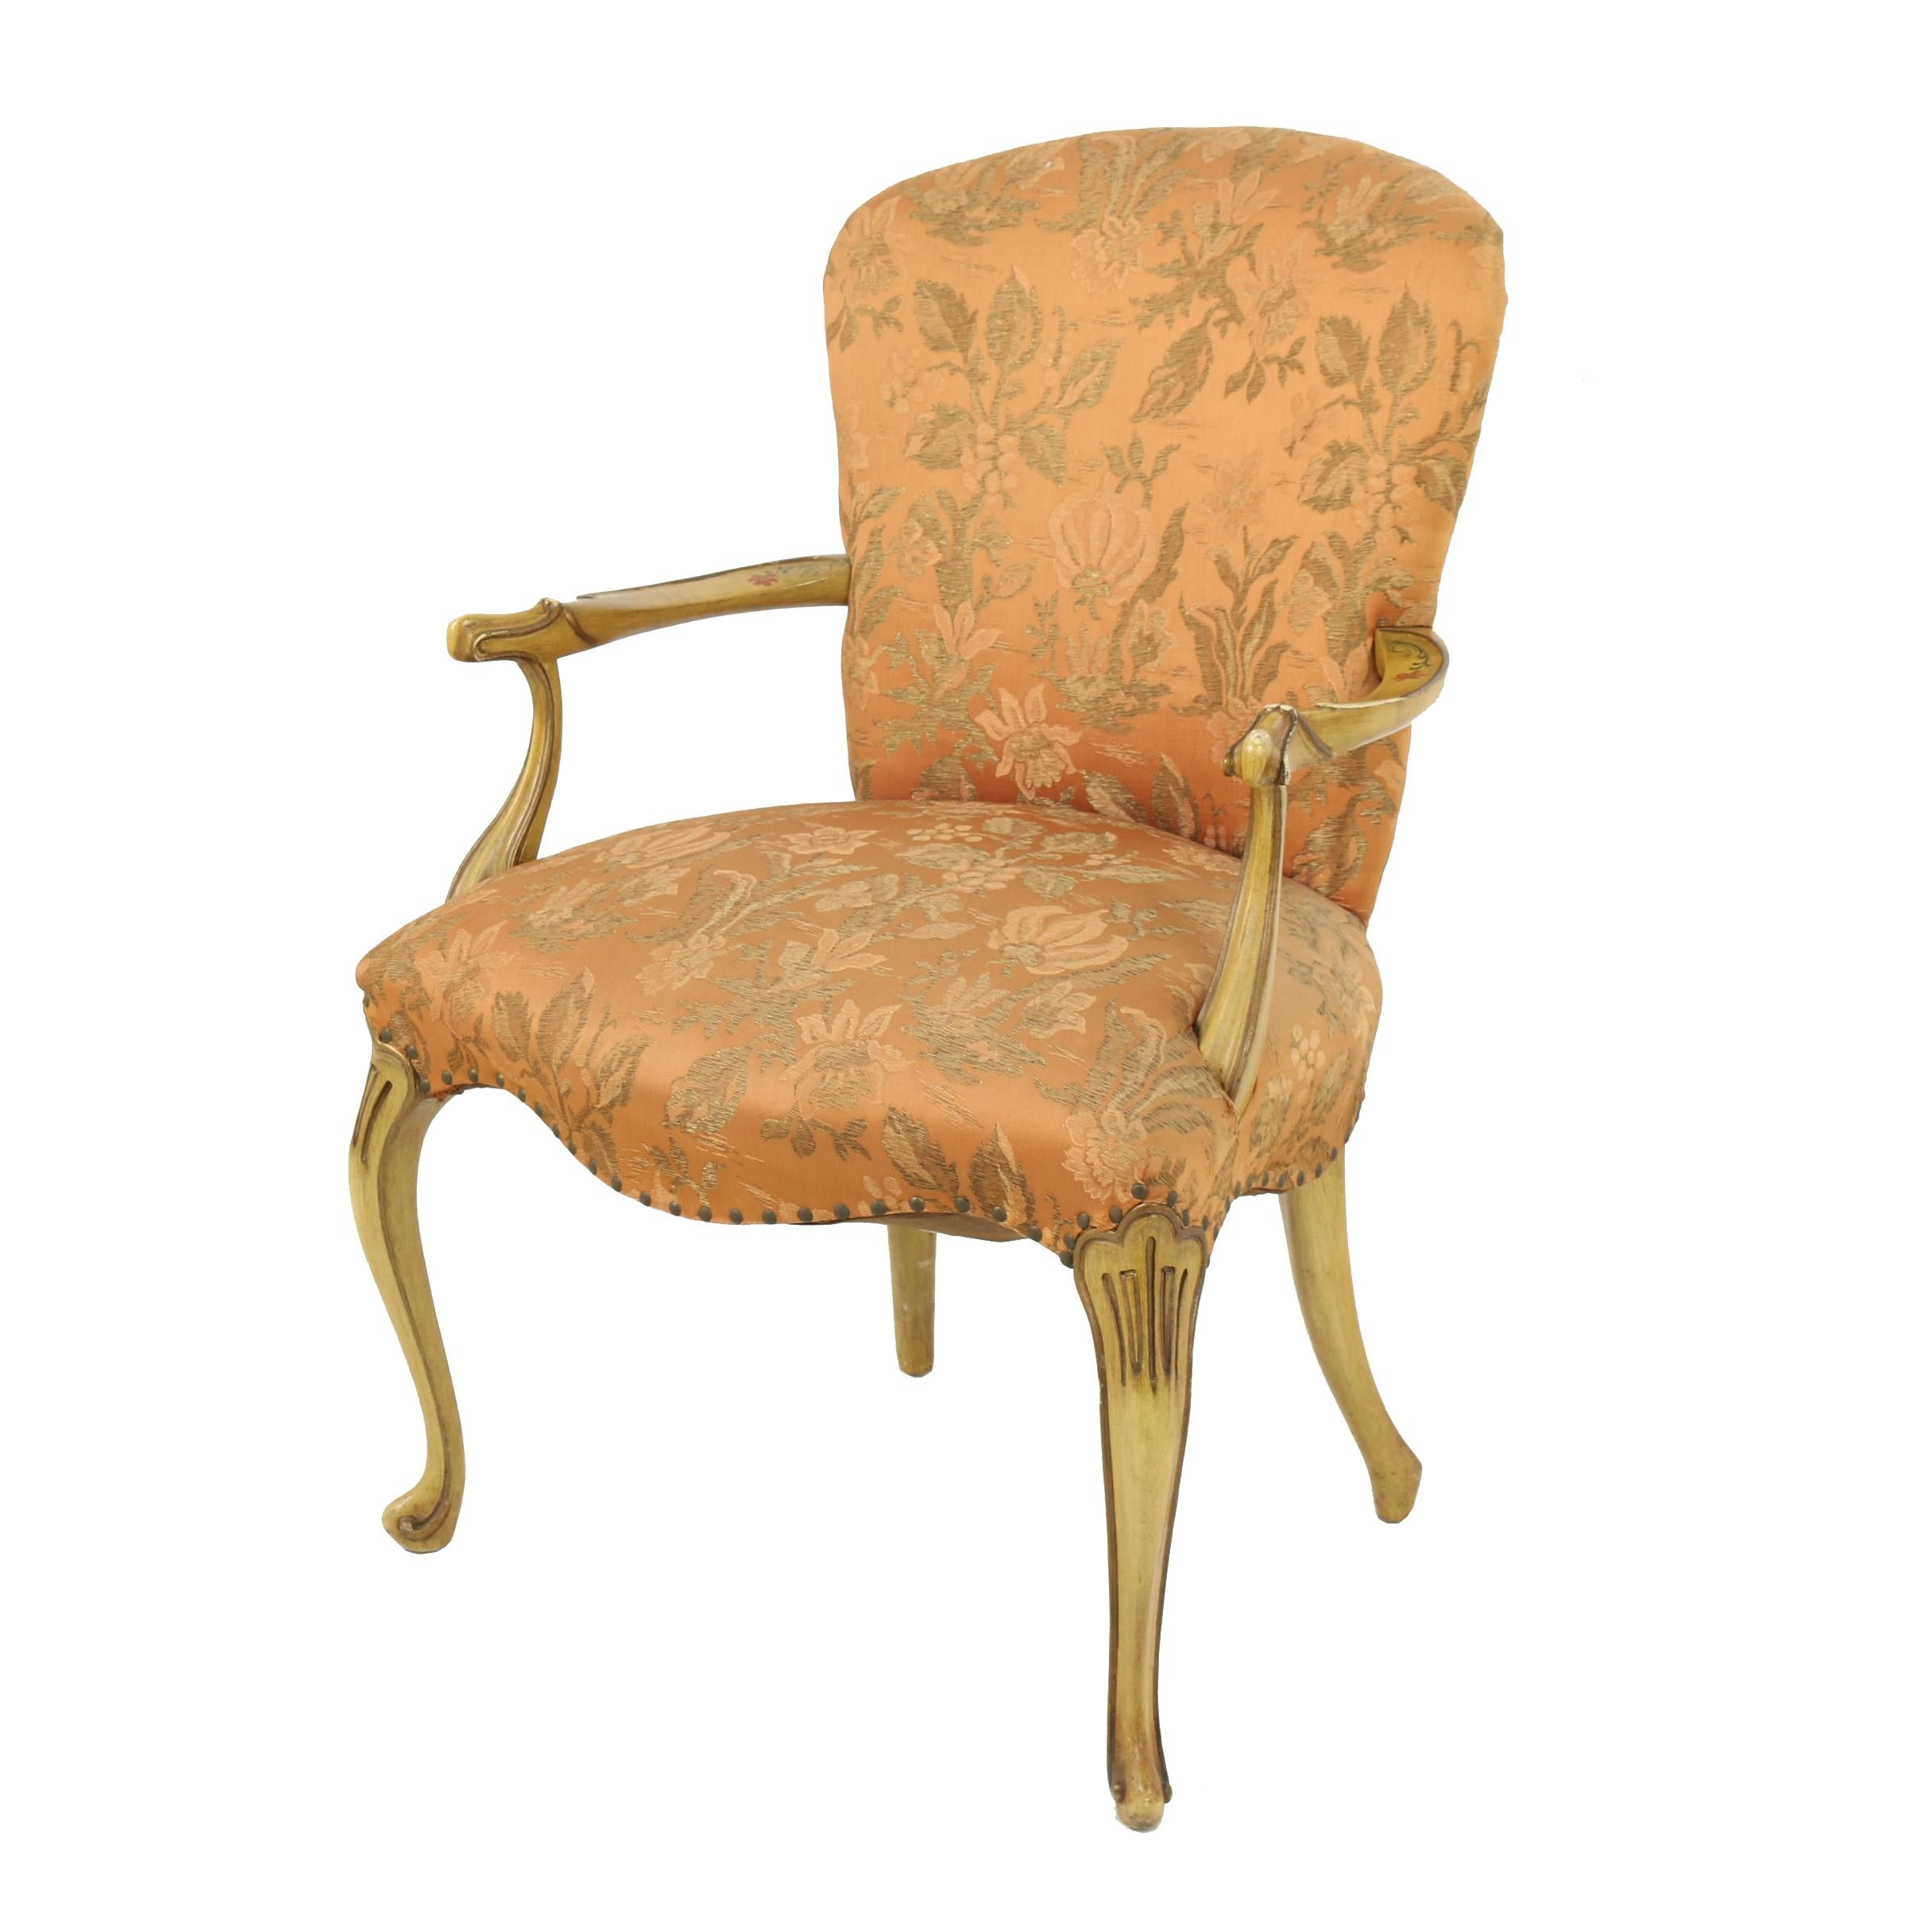 Queen Anne Style Upholstered Armchair, Mid-20th Century